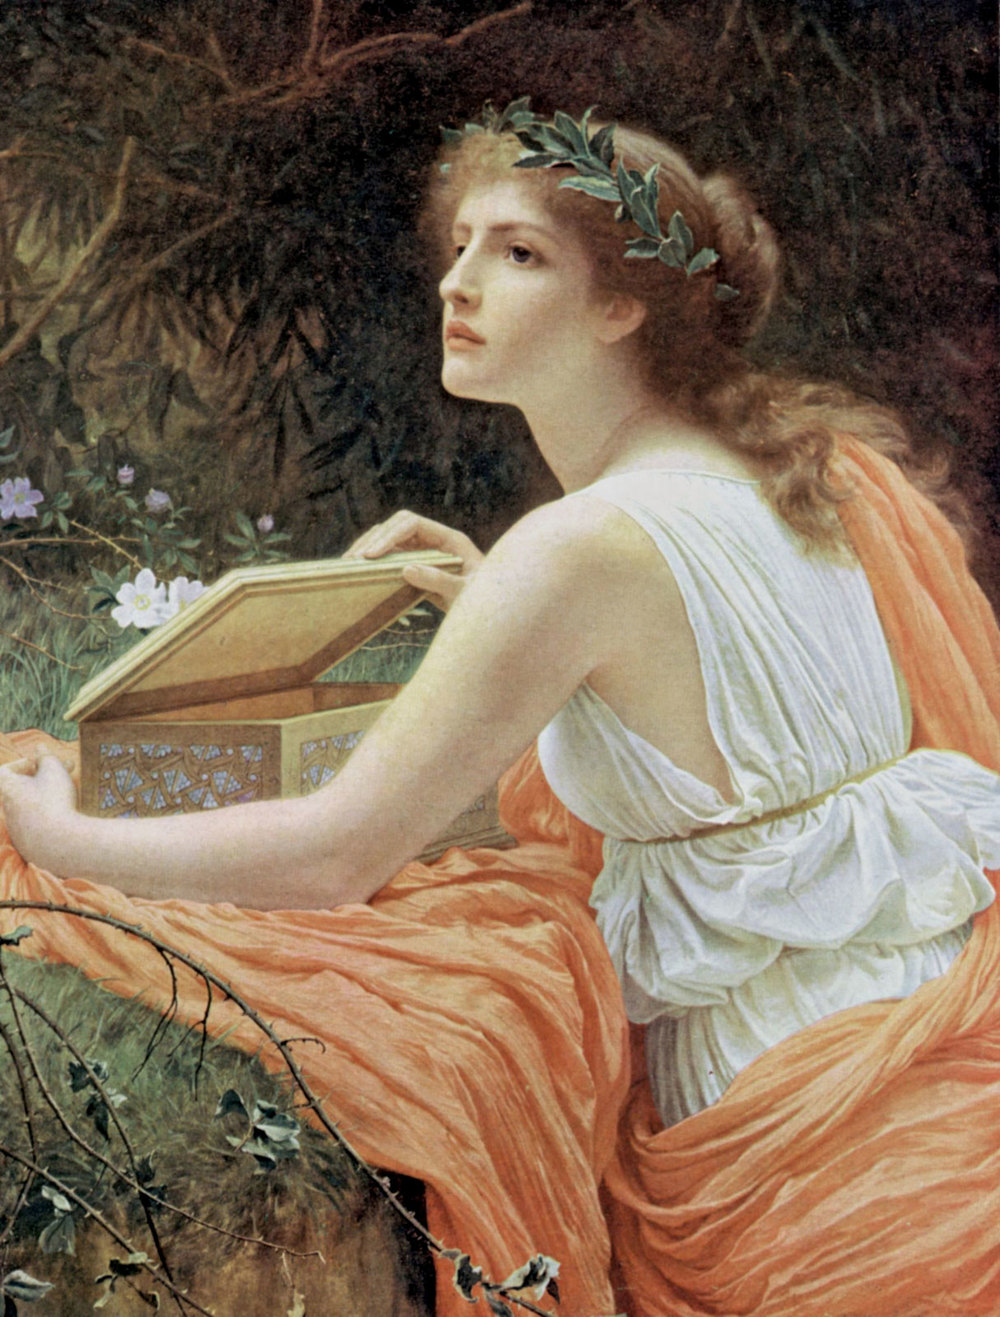 Pandora's Box – Wikicommons